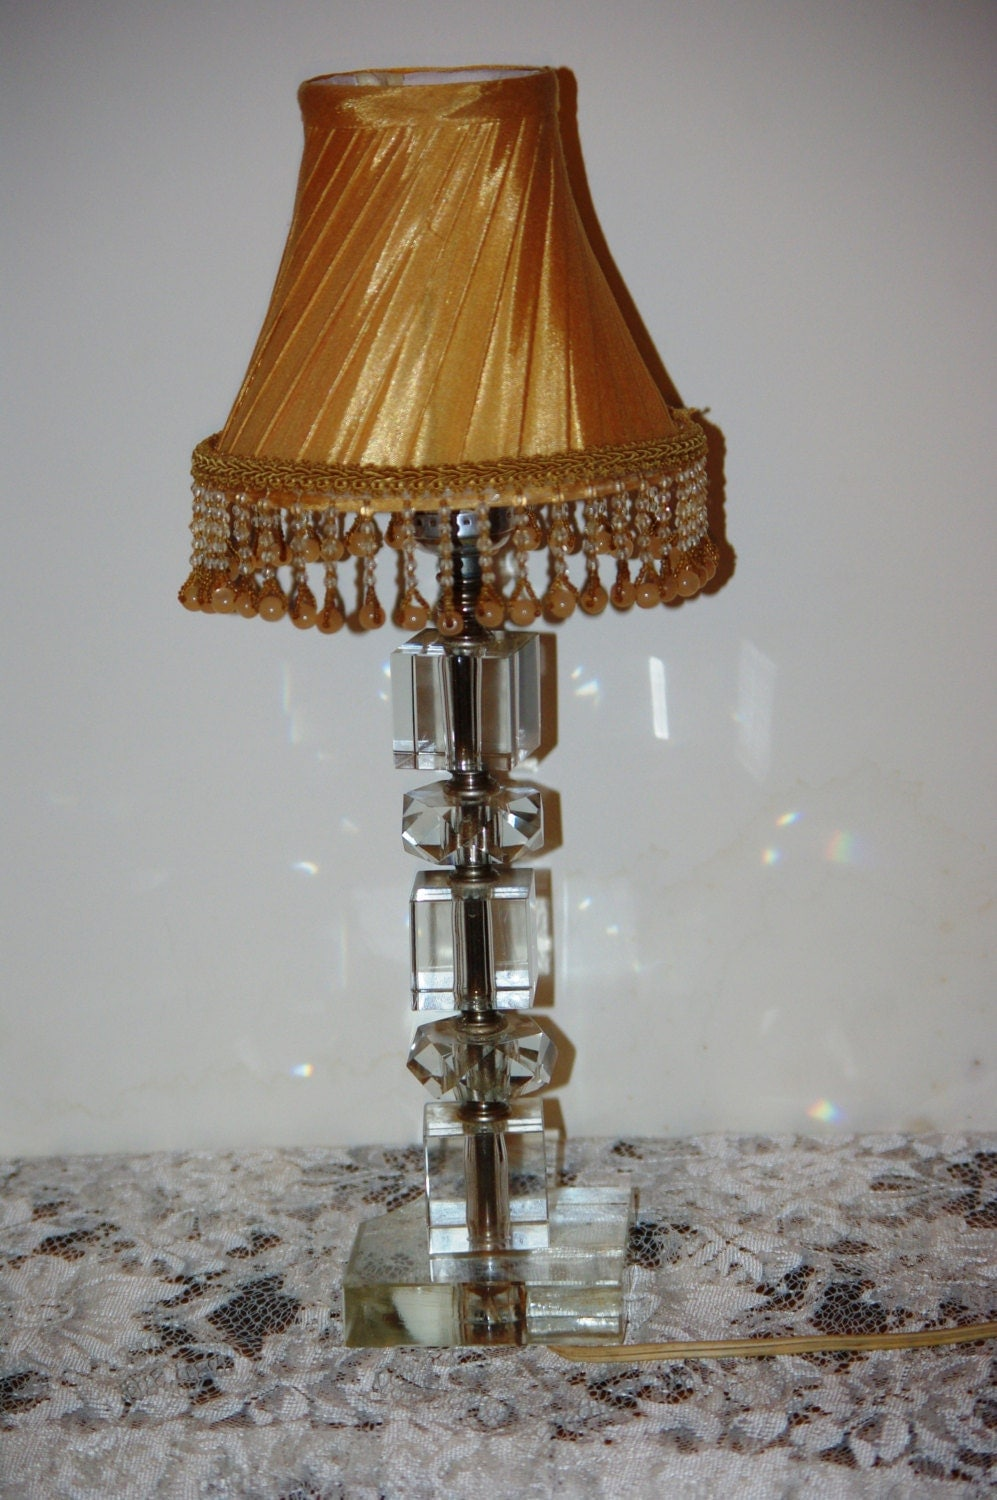 vintage crystal bedroom or night light table lamp with yellow